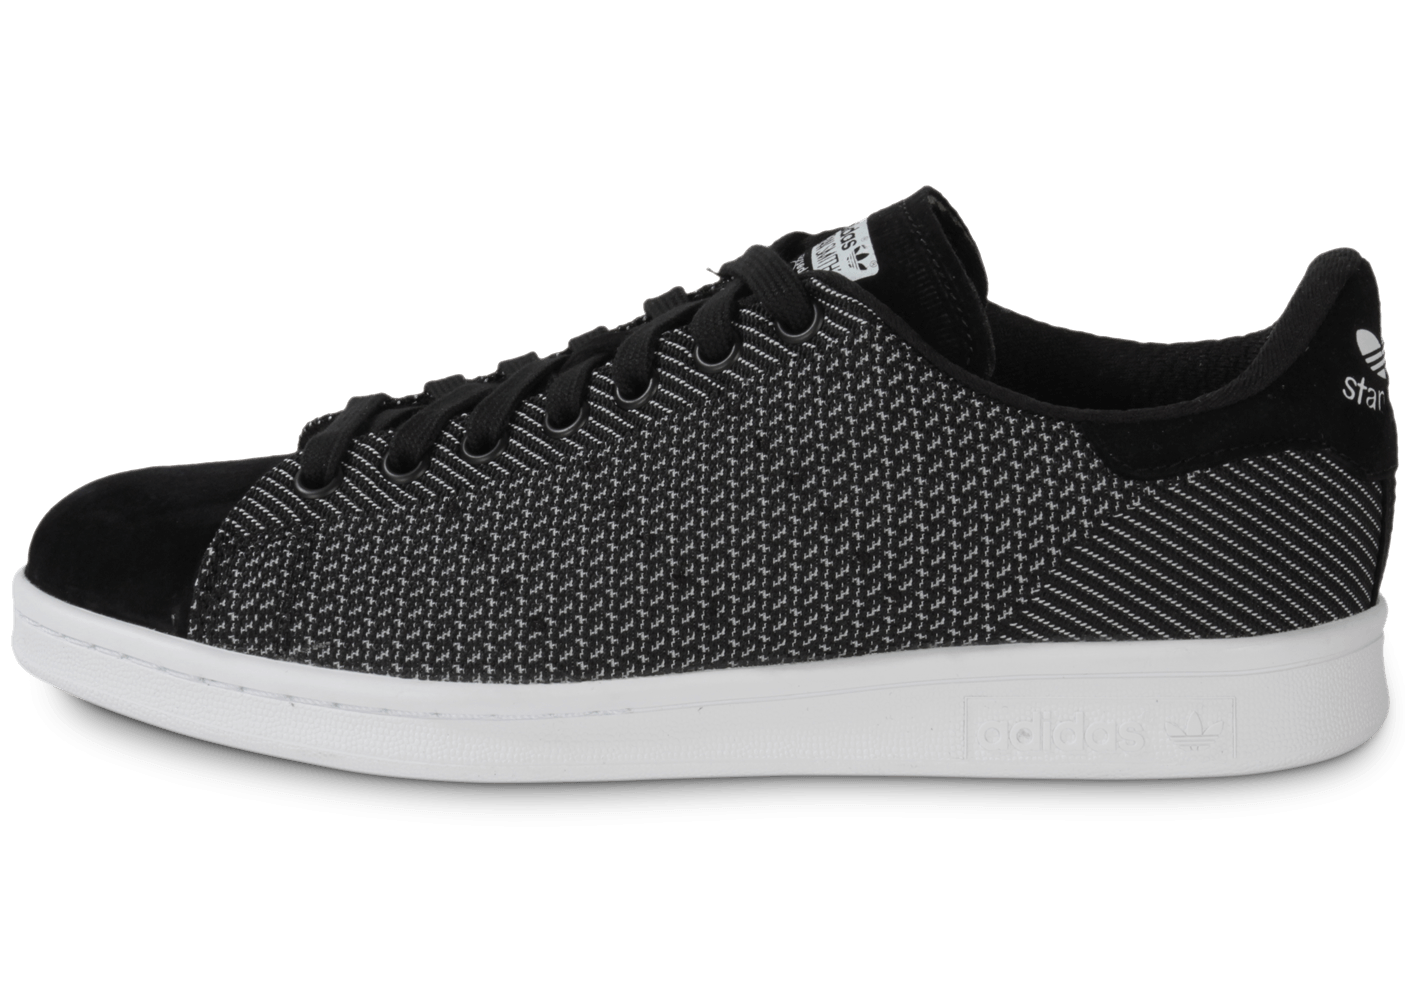 factory authentic 360e0 8680c adidas Stan Smith Core Black - Chaussures Baskets homme - Chausport